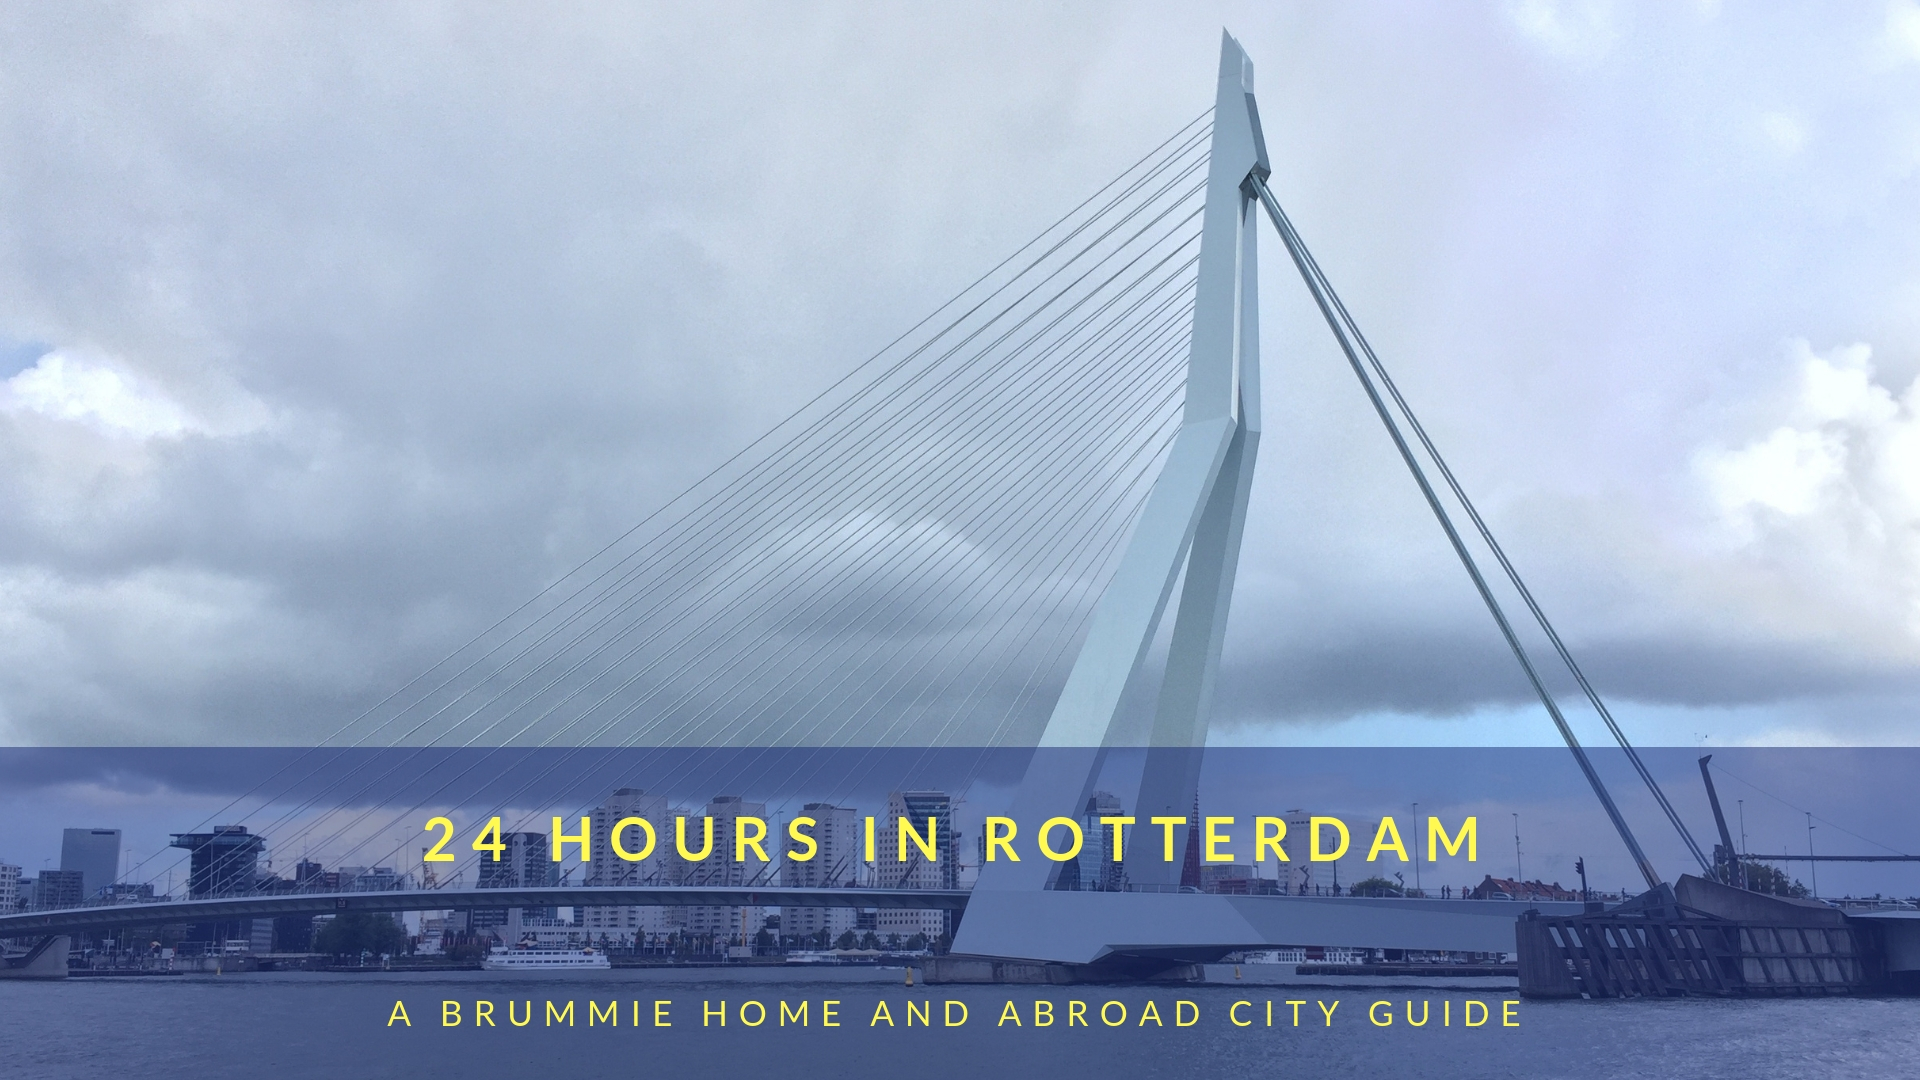 24 hours in Rotterdam: A Brummie Home and Abroad City Guide. Rotterdam deserves so much more than 24 hours, but what if that's all the time you have? Don't worry, you can hit all the main sights in just a single day!